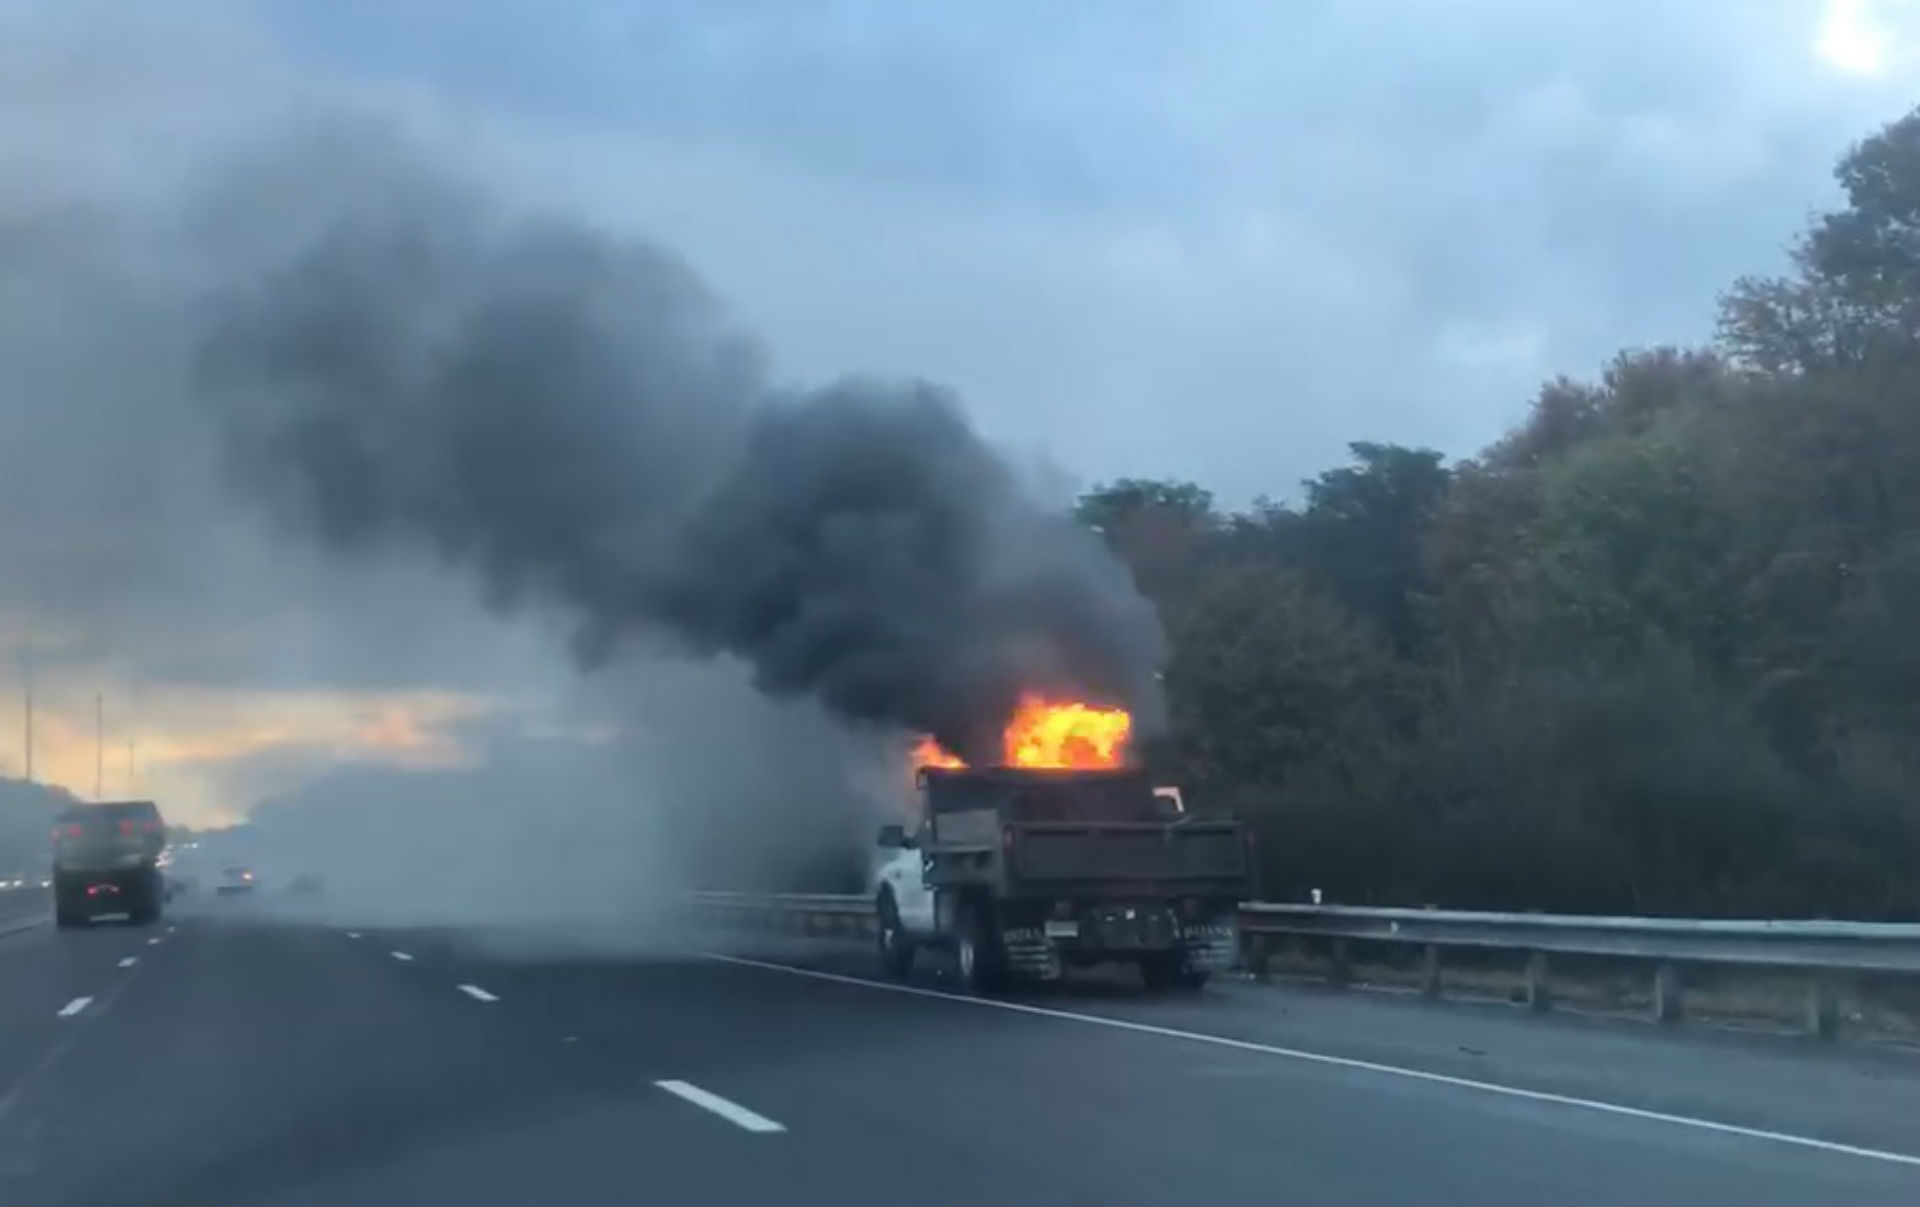 Truck fire closes part of I-95 north in Branford